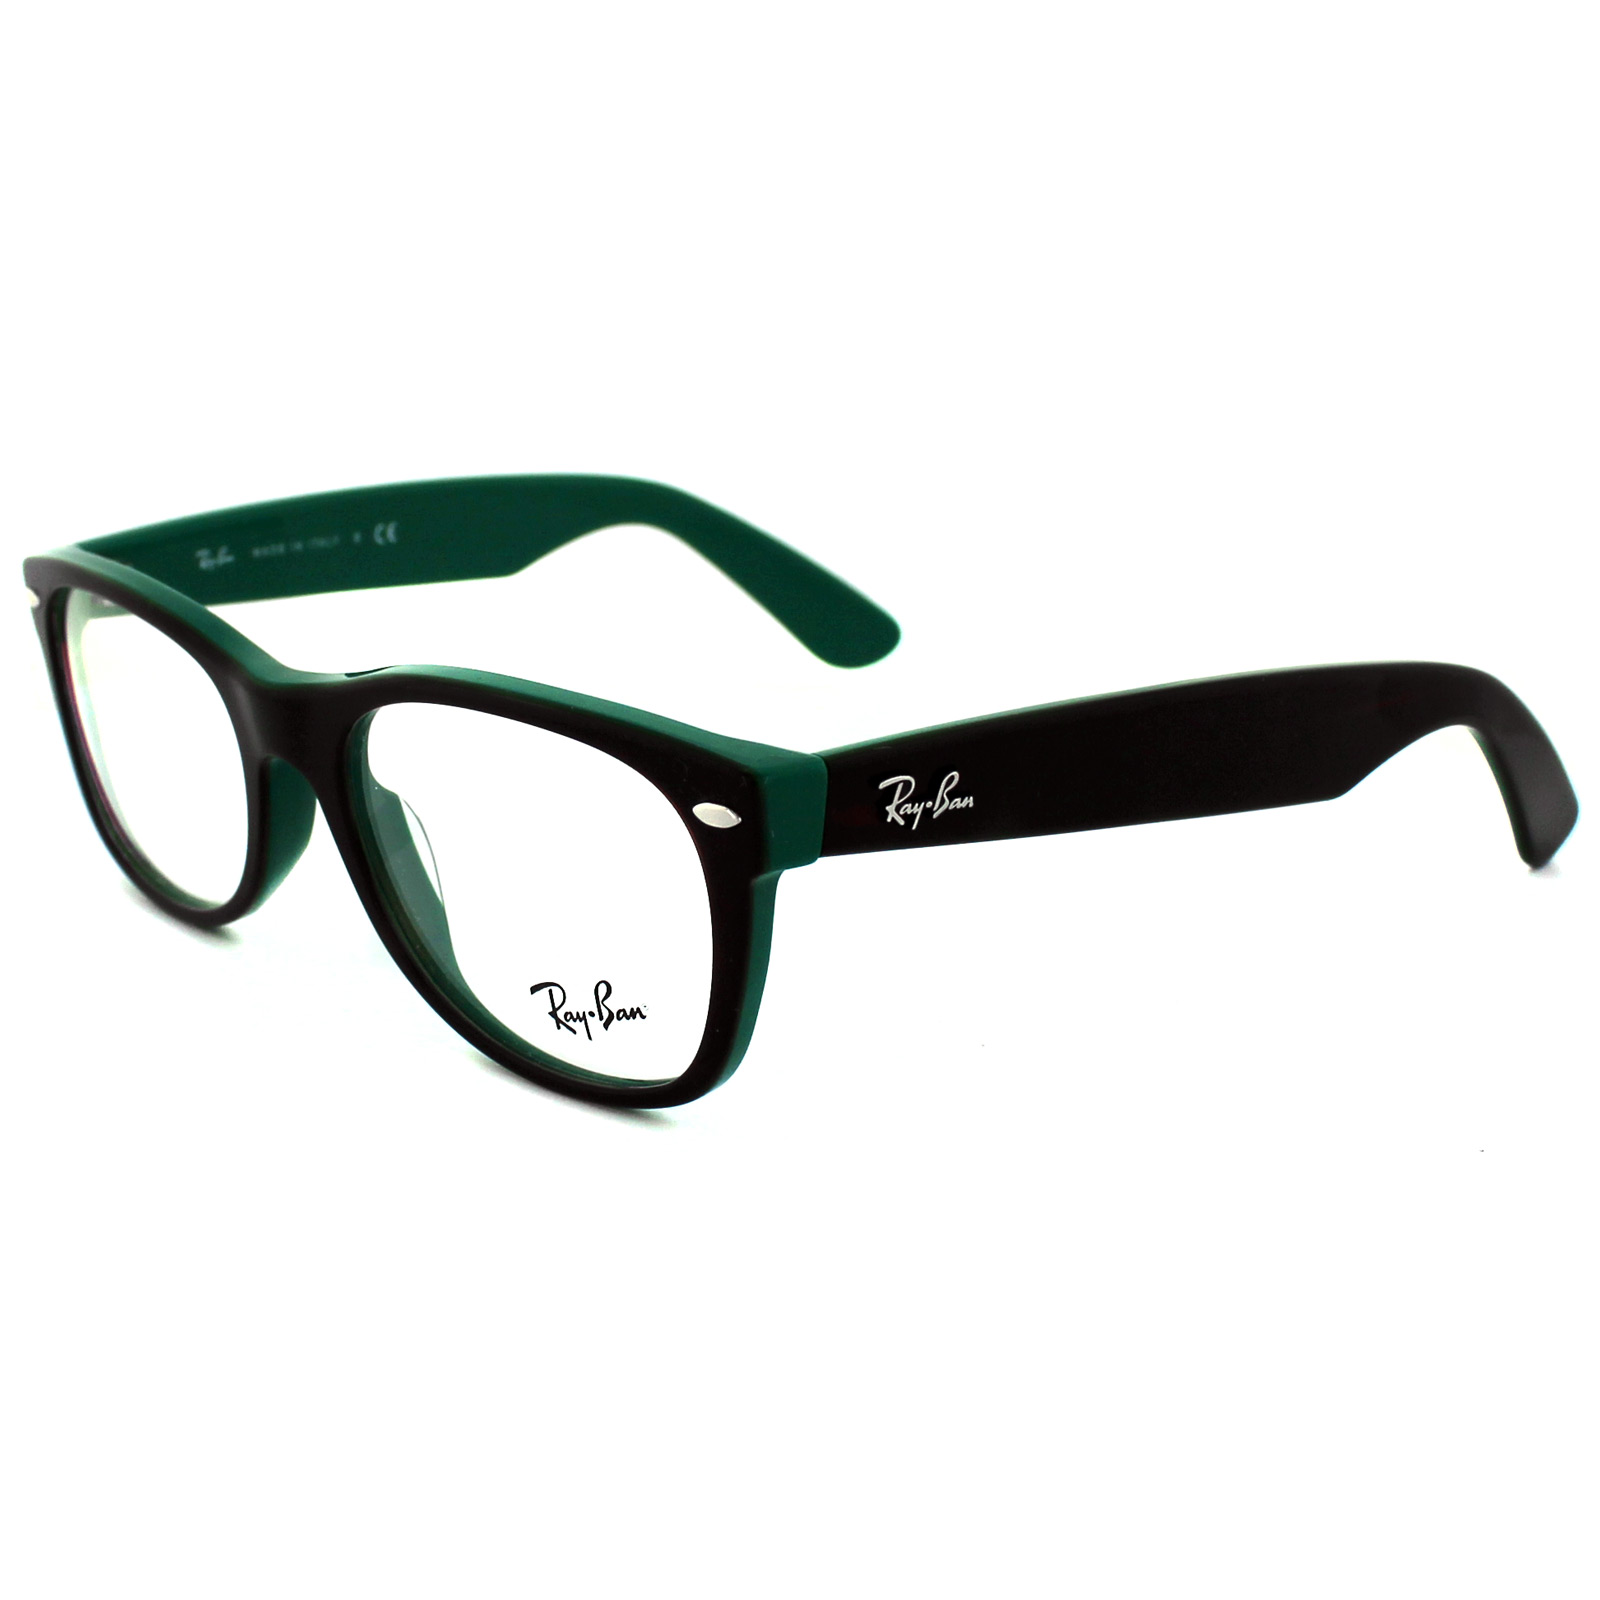 Ray Ban Glasses Large Frame : Ray-Ban Glasses Frames 5184 New Wayfarer 5161 Light Havana ...